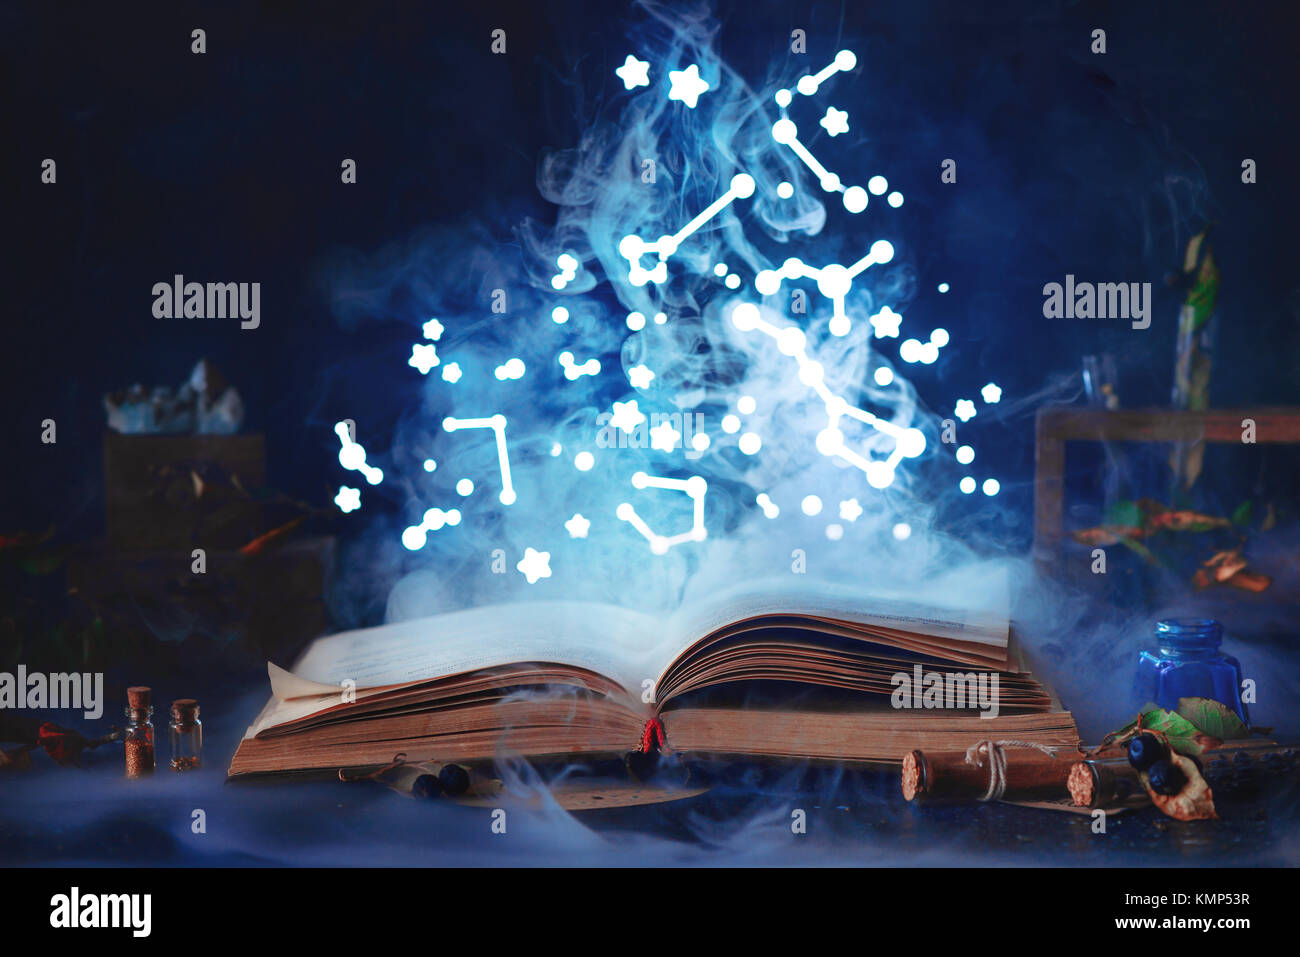 Book of spells with mystical smoke and stary sky. Magical still life with jars and bottles on a dark background. Stock Photo